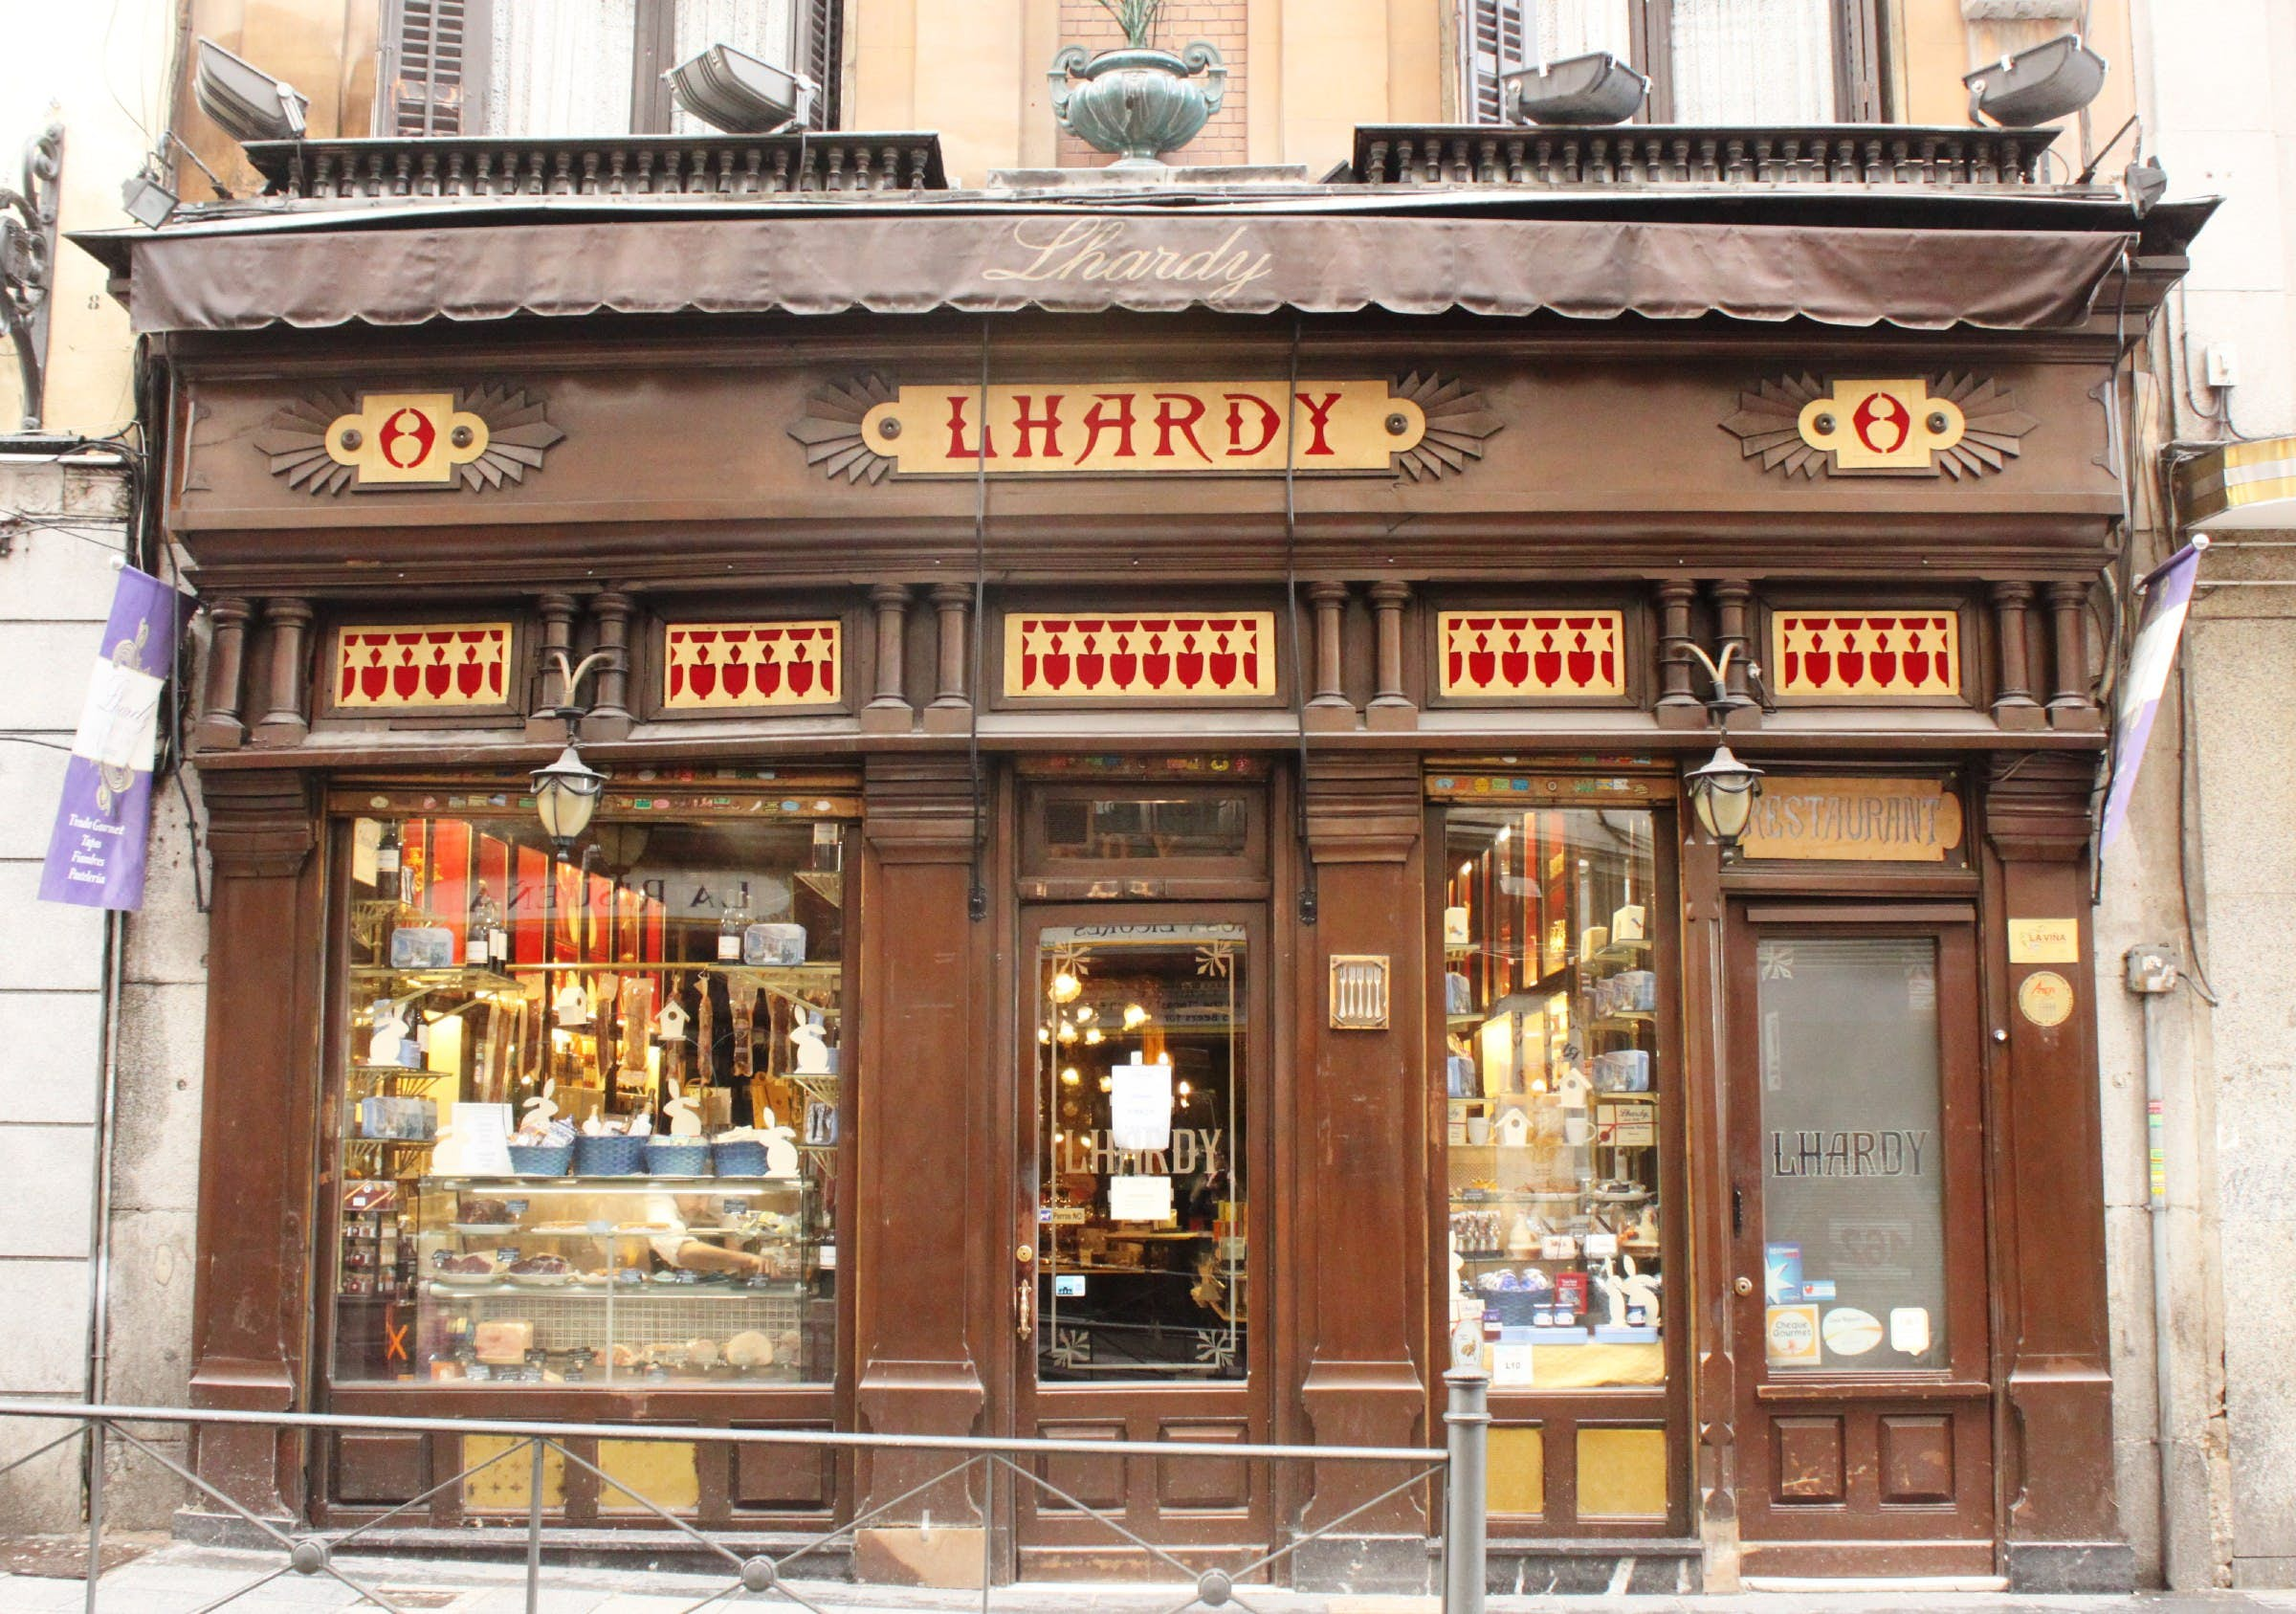 Lhardy | Madrid, Spain Restaurants - Lonely Planet